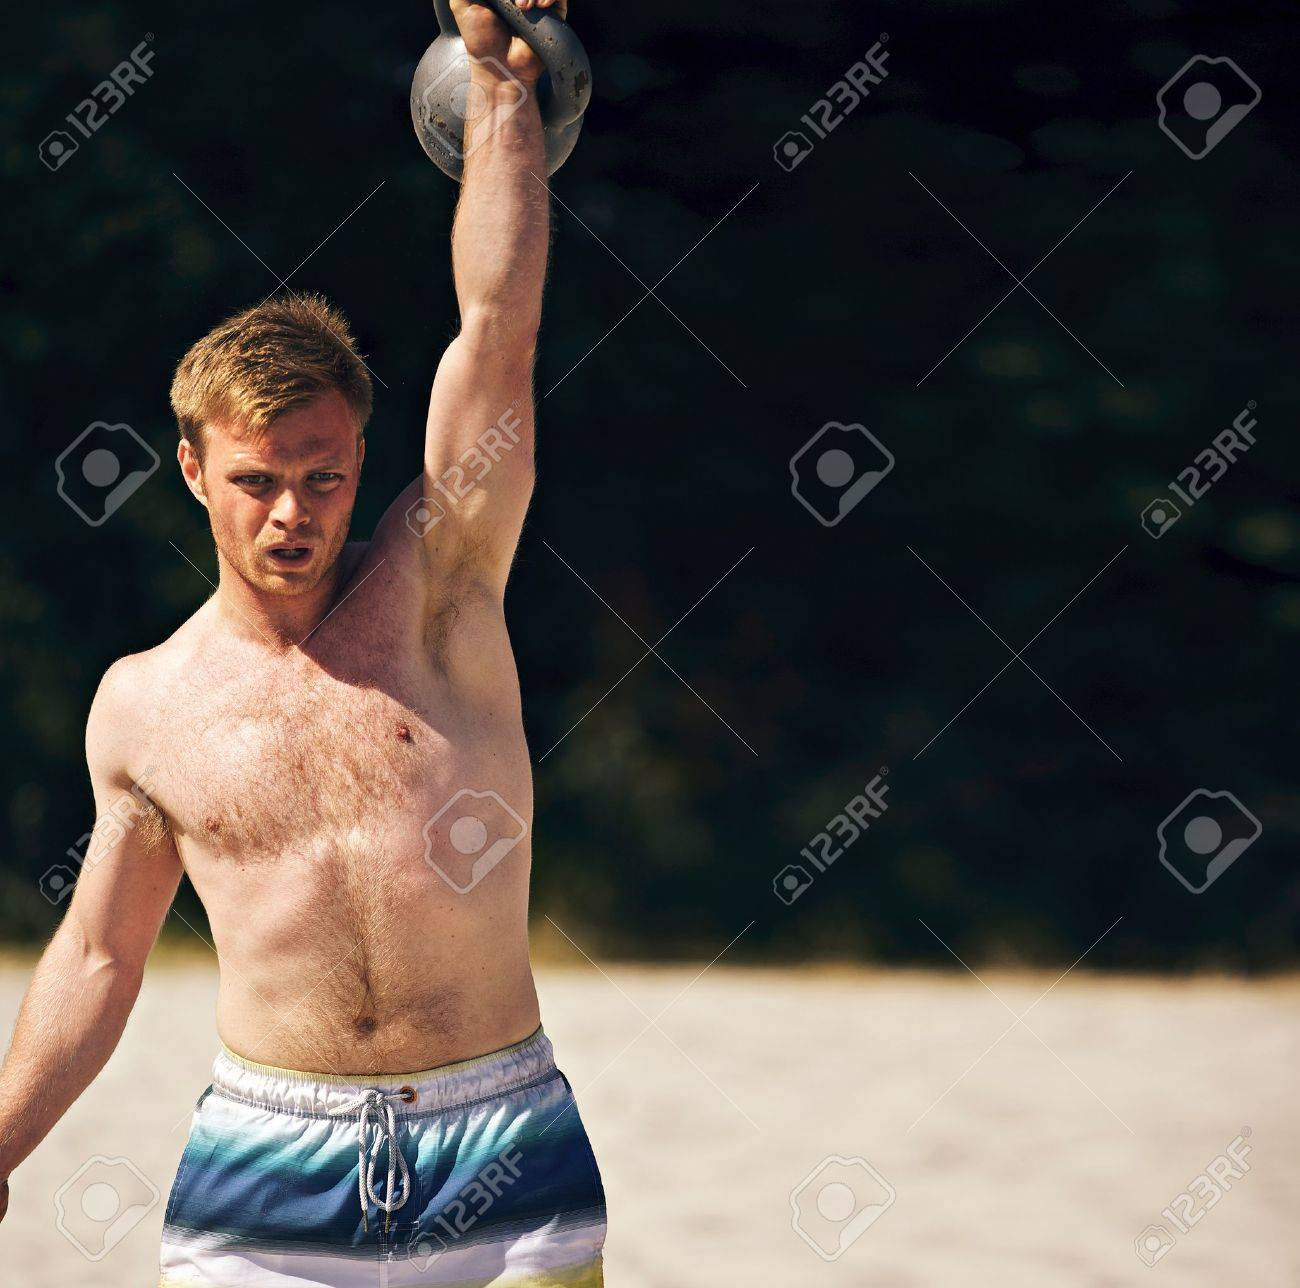 guy lifting a heavy kettlebell on a beach during crossfit workout